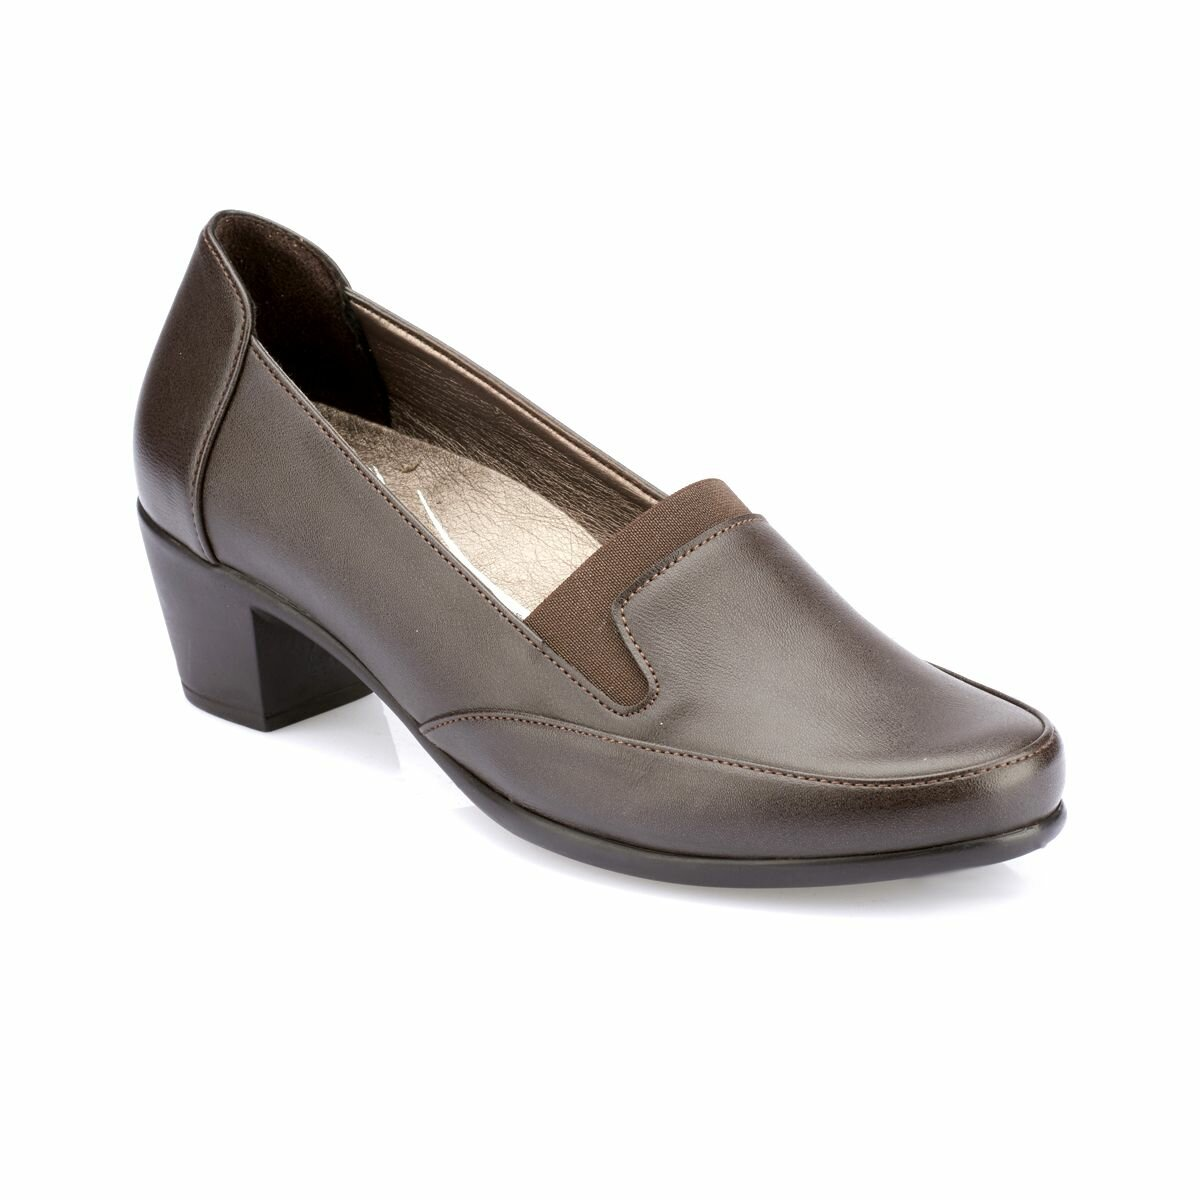 FLO 82.100120.Z Brown Women 'S Shoes Polaris 5 Point